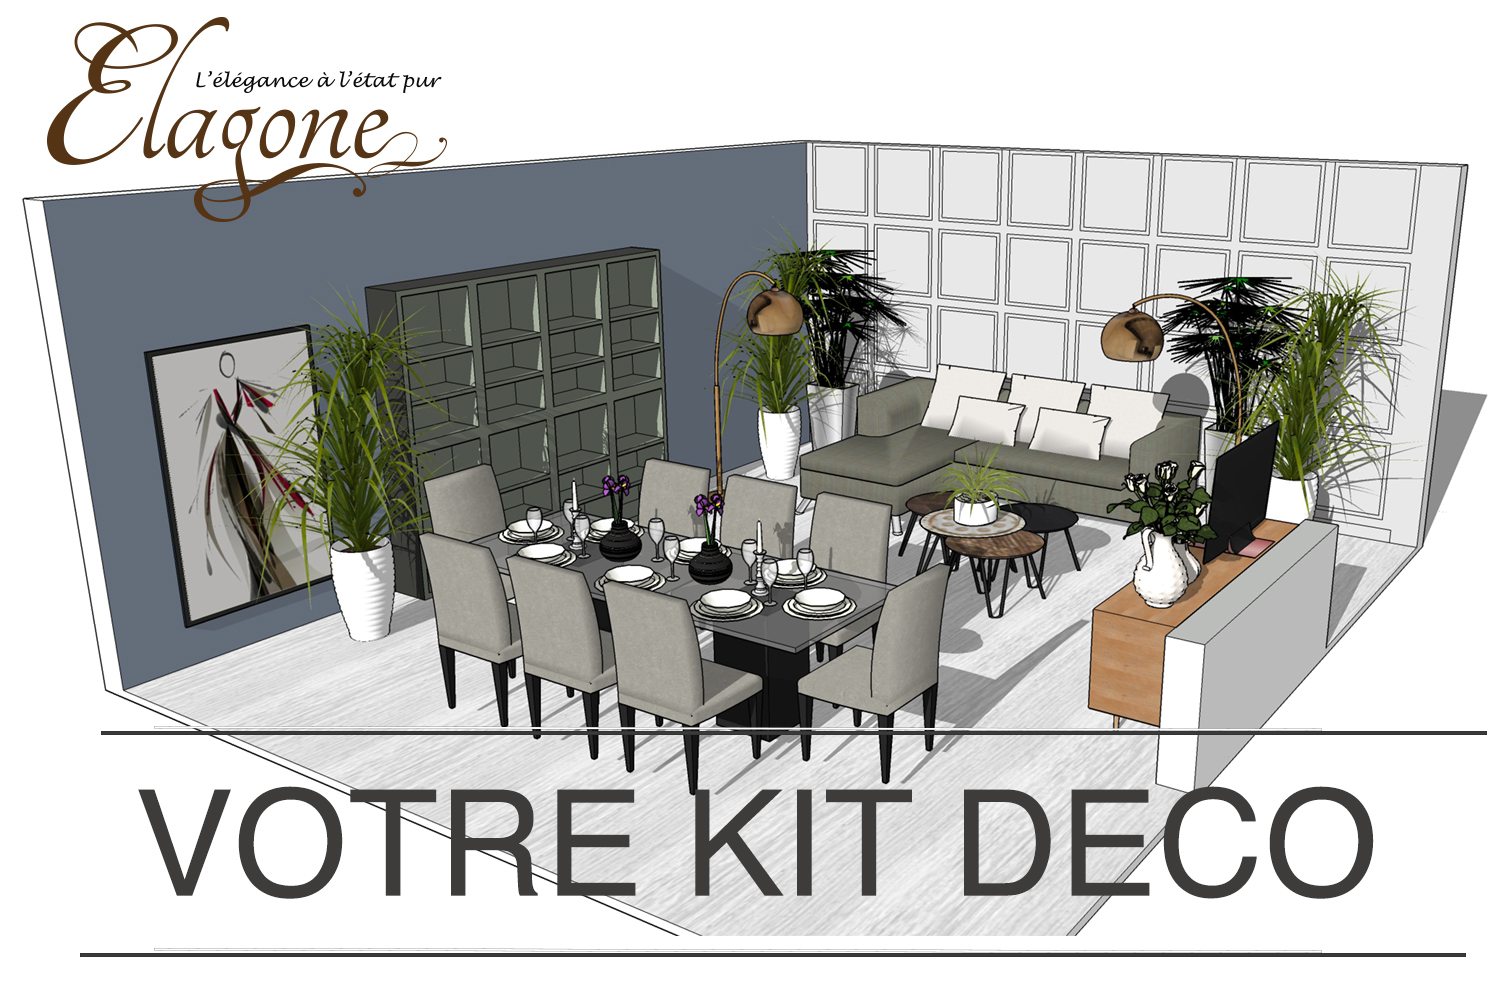 page de remerciement kit deco d coratrice architecte d 39 int rieur consultante d co. Black Bedroom Furniture Sets. Home Design Ideas